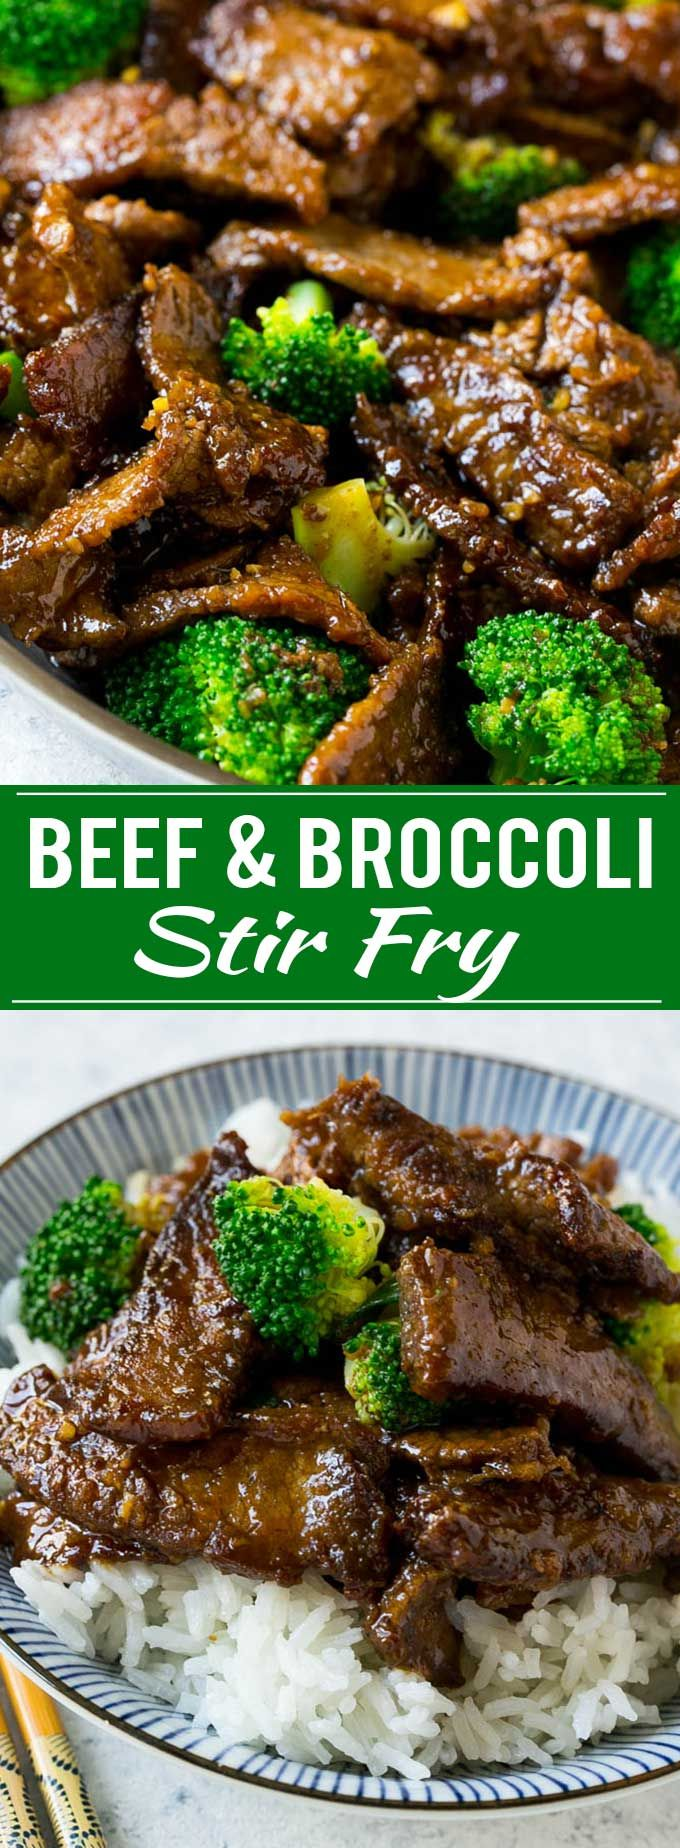 Beef and Broccoli Stir Fry. Made it. Will sub Sherry or cider for beef stock. Added onion chunks and carrots.